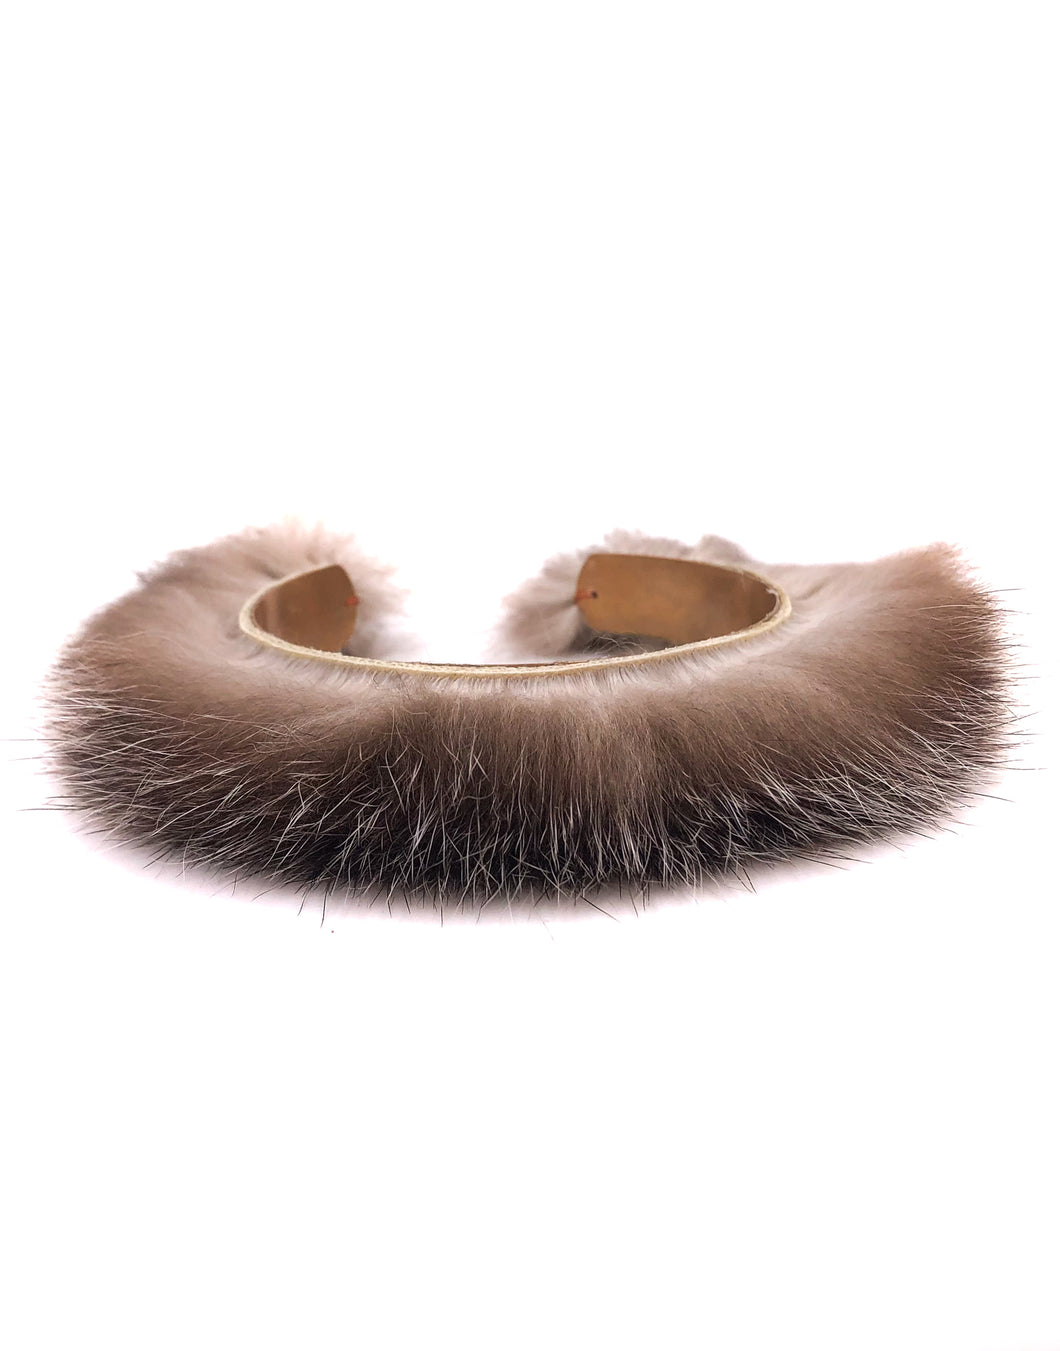 Sea Otter Fur Bracelet